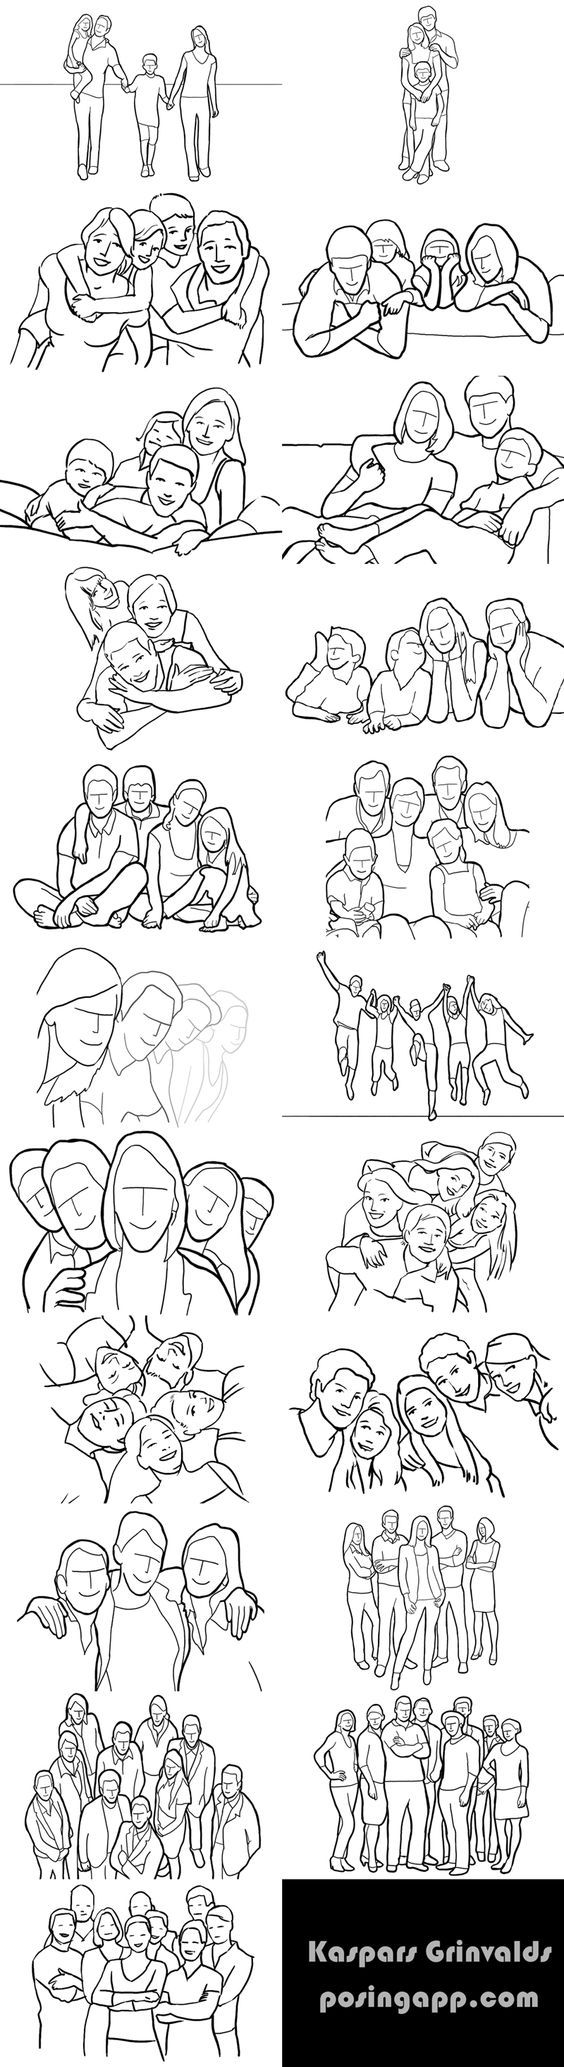 ideas for group poses... I know someone who needs this.: